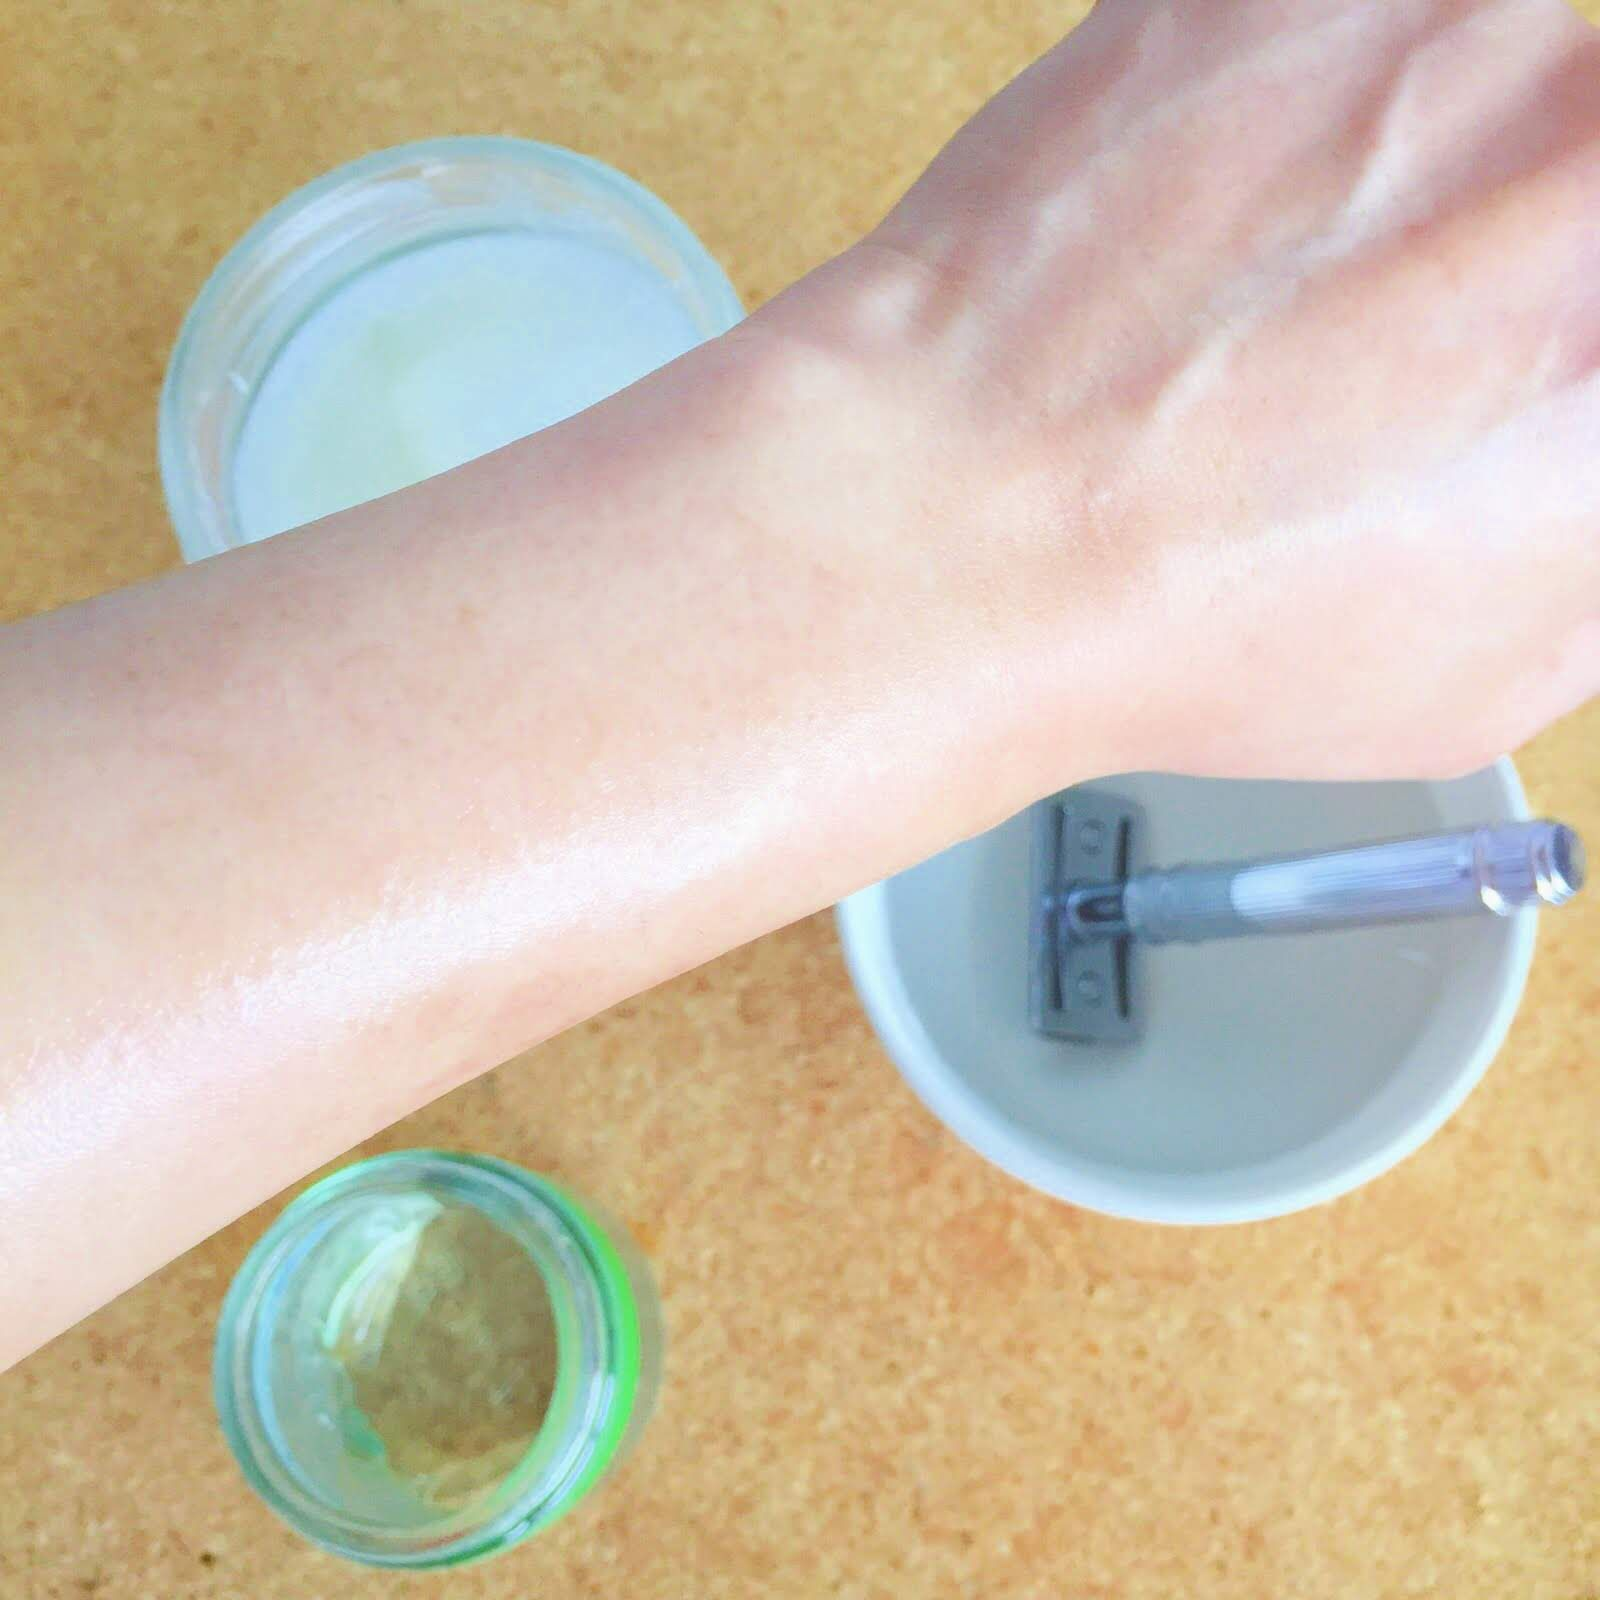 A female guide to ecofriendly shaving how to shave with